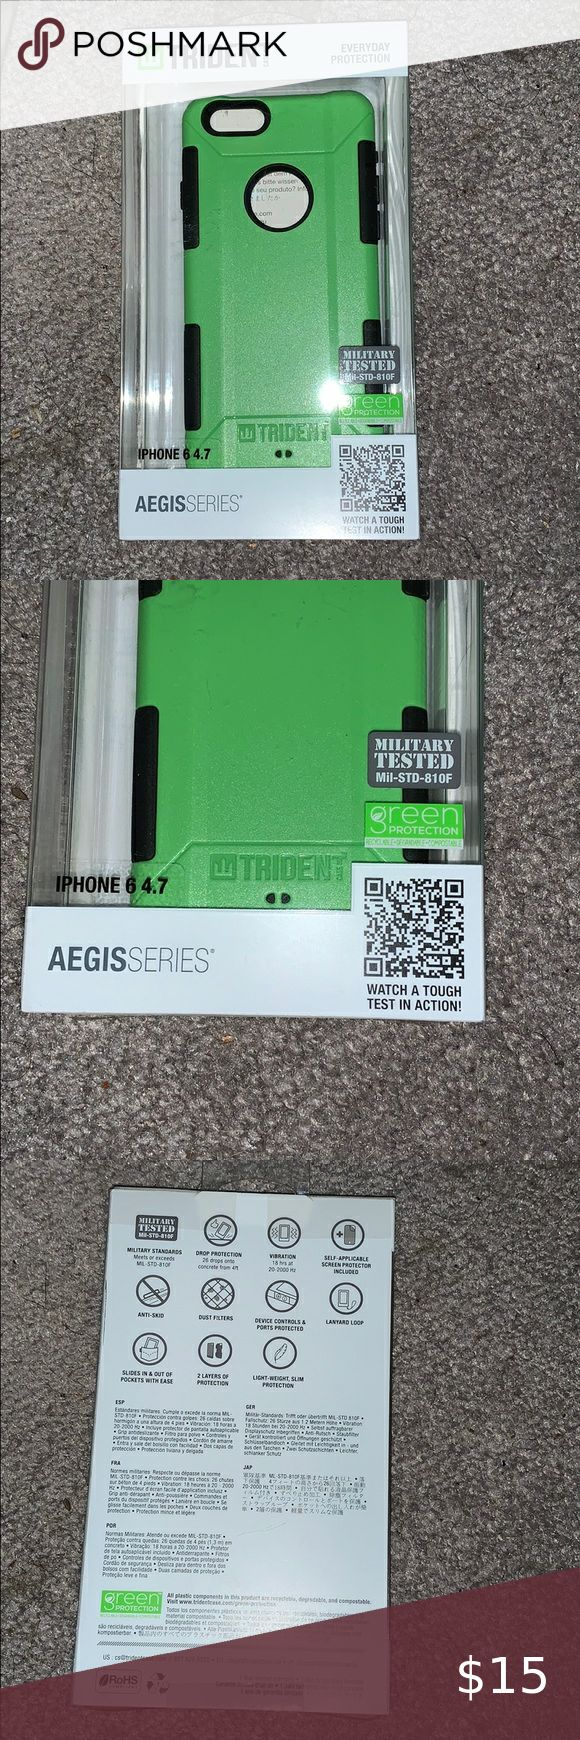 iPhone 6s phone case Brand new iPhone 6s case lime green